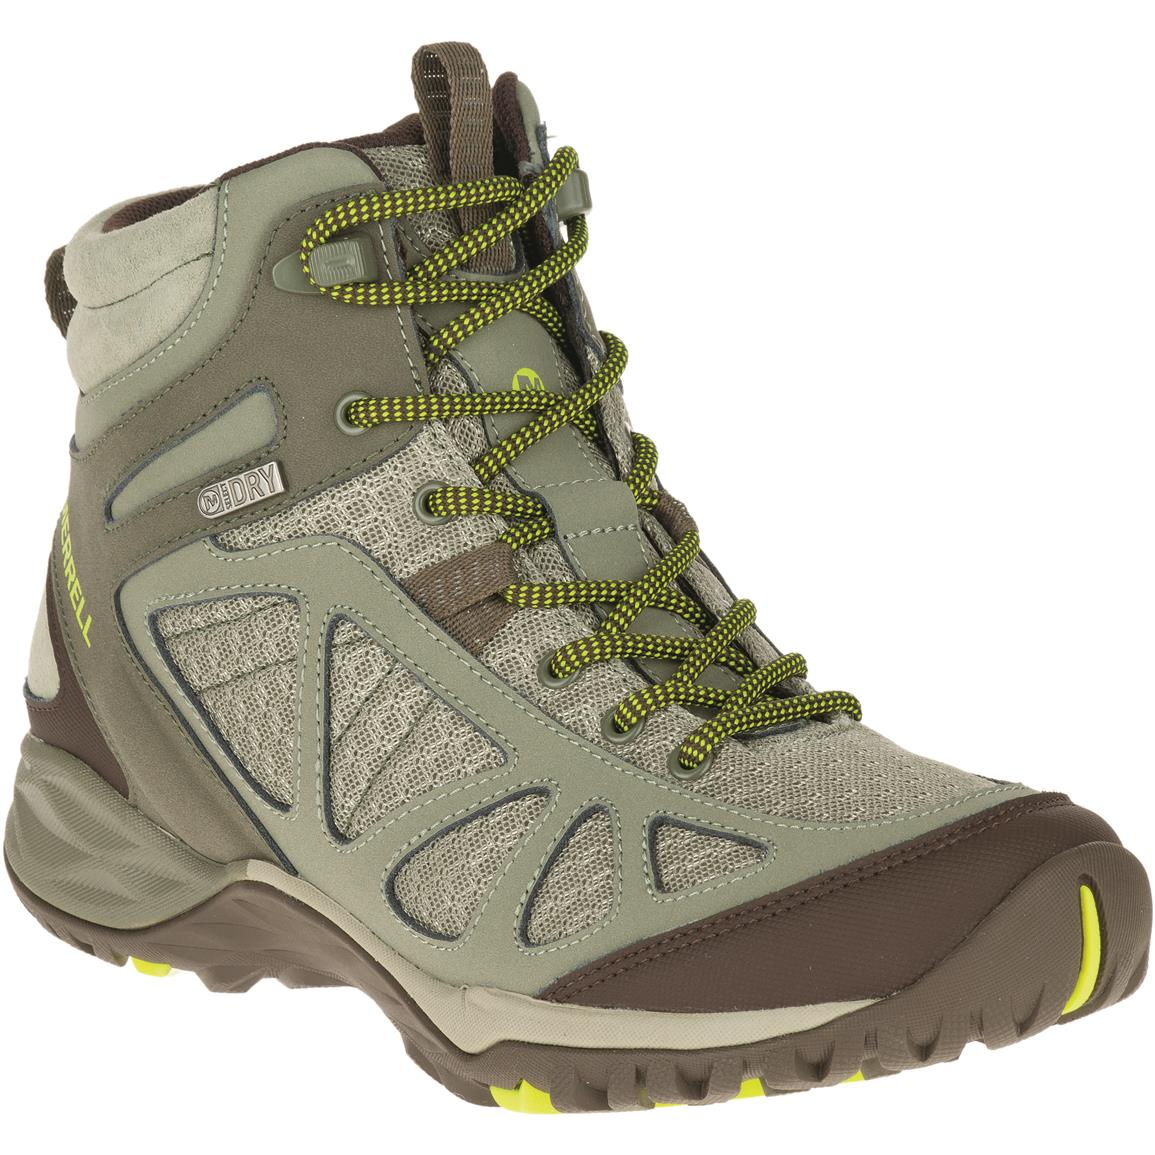 Merrell Women's Siren Sport Q2 Waterproof Hiking Shoes, Dusty Olive